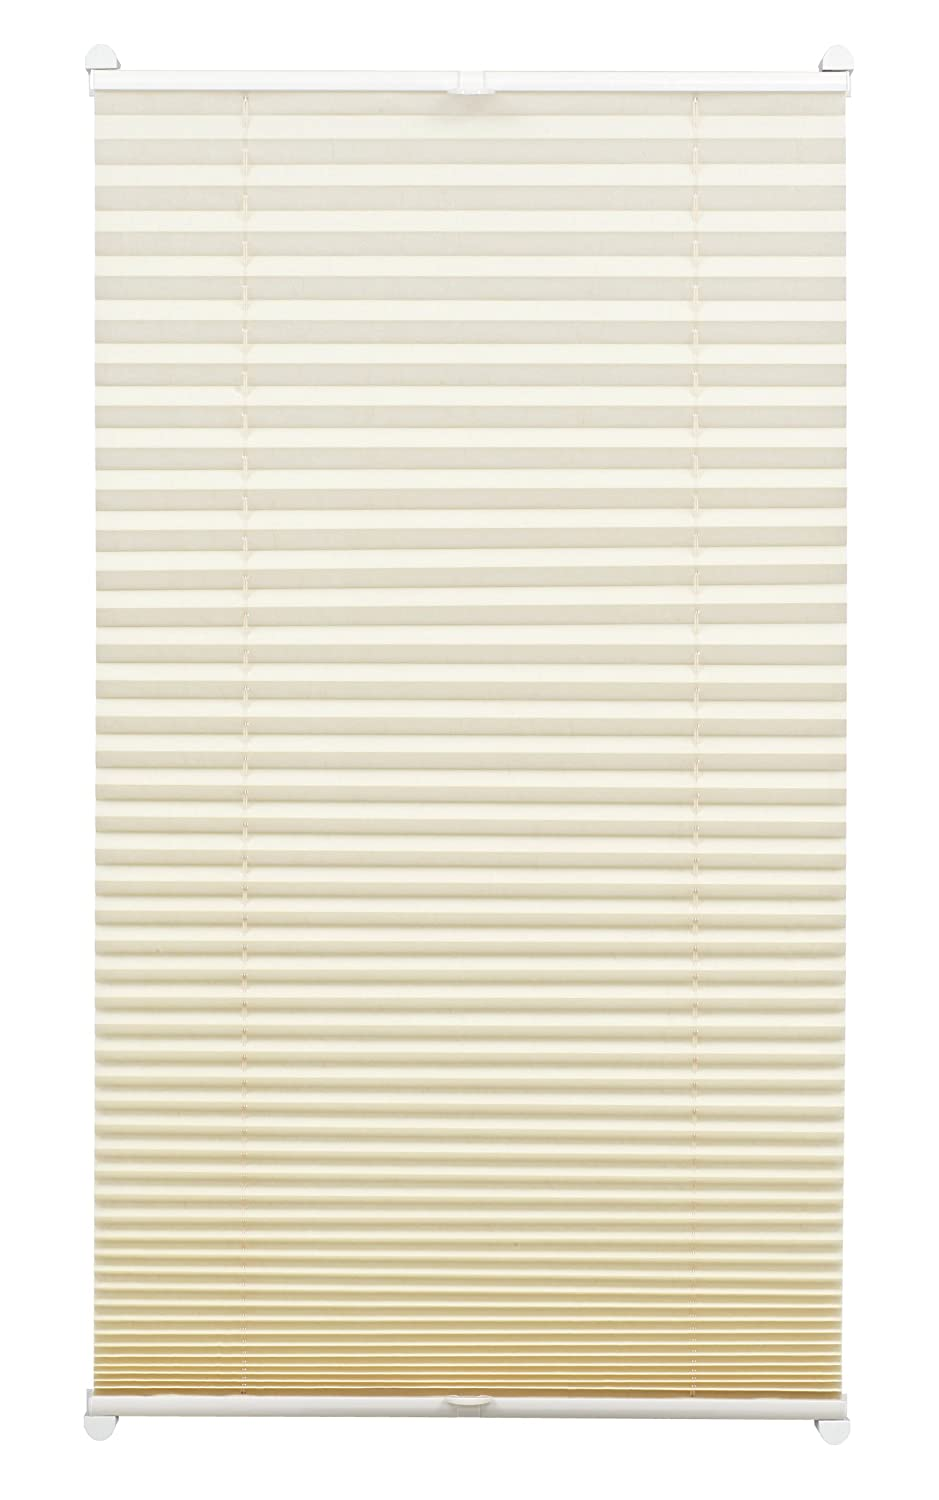 Gardinia Pleated Blind for Clamping, Opaque Folding Blind, Mounting Kit Included, EASYFIX Pleated Blind with Two Operating Rails, Ivory, 40 x 130 cm (WxH) 33401